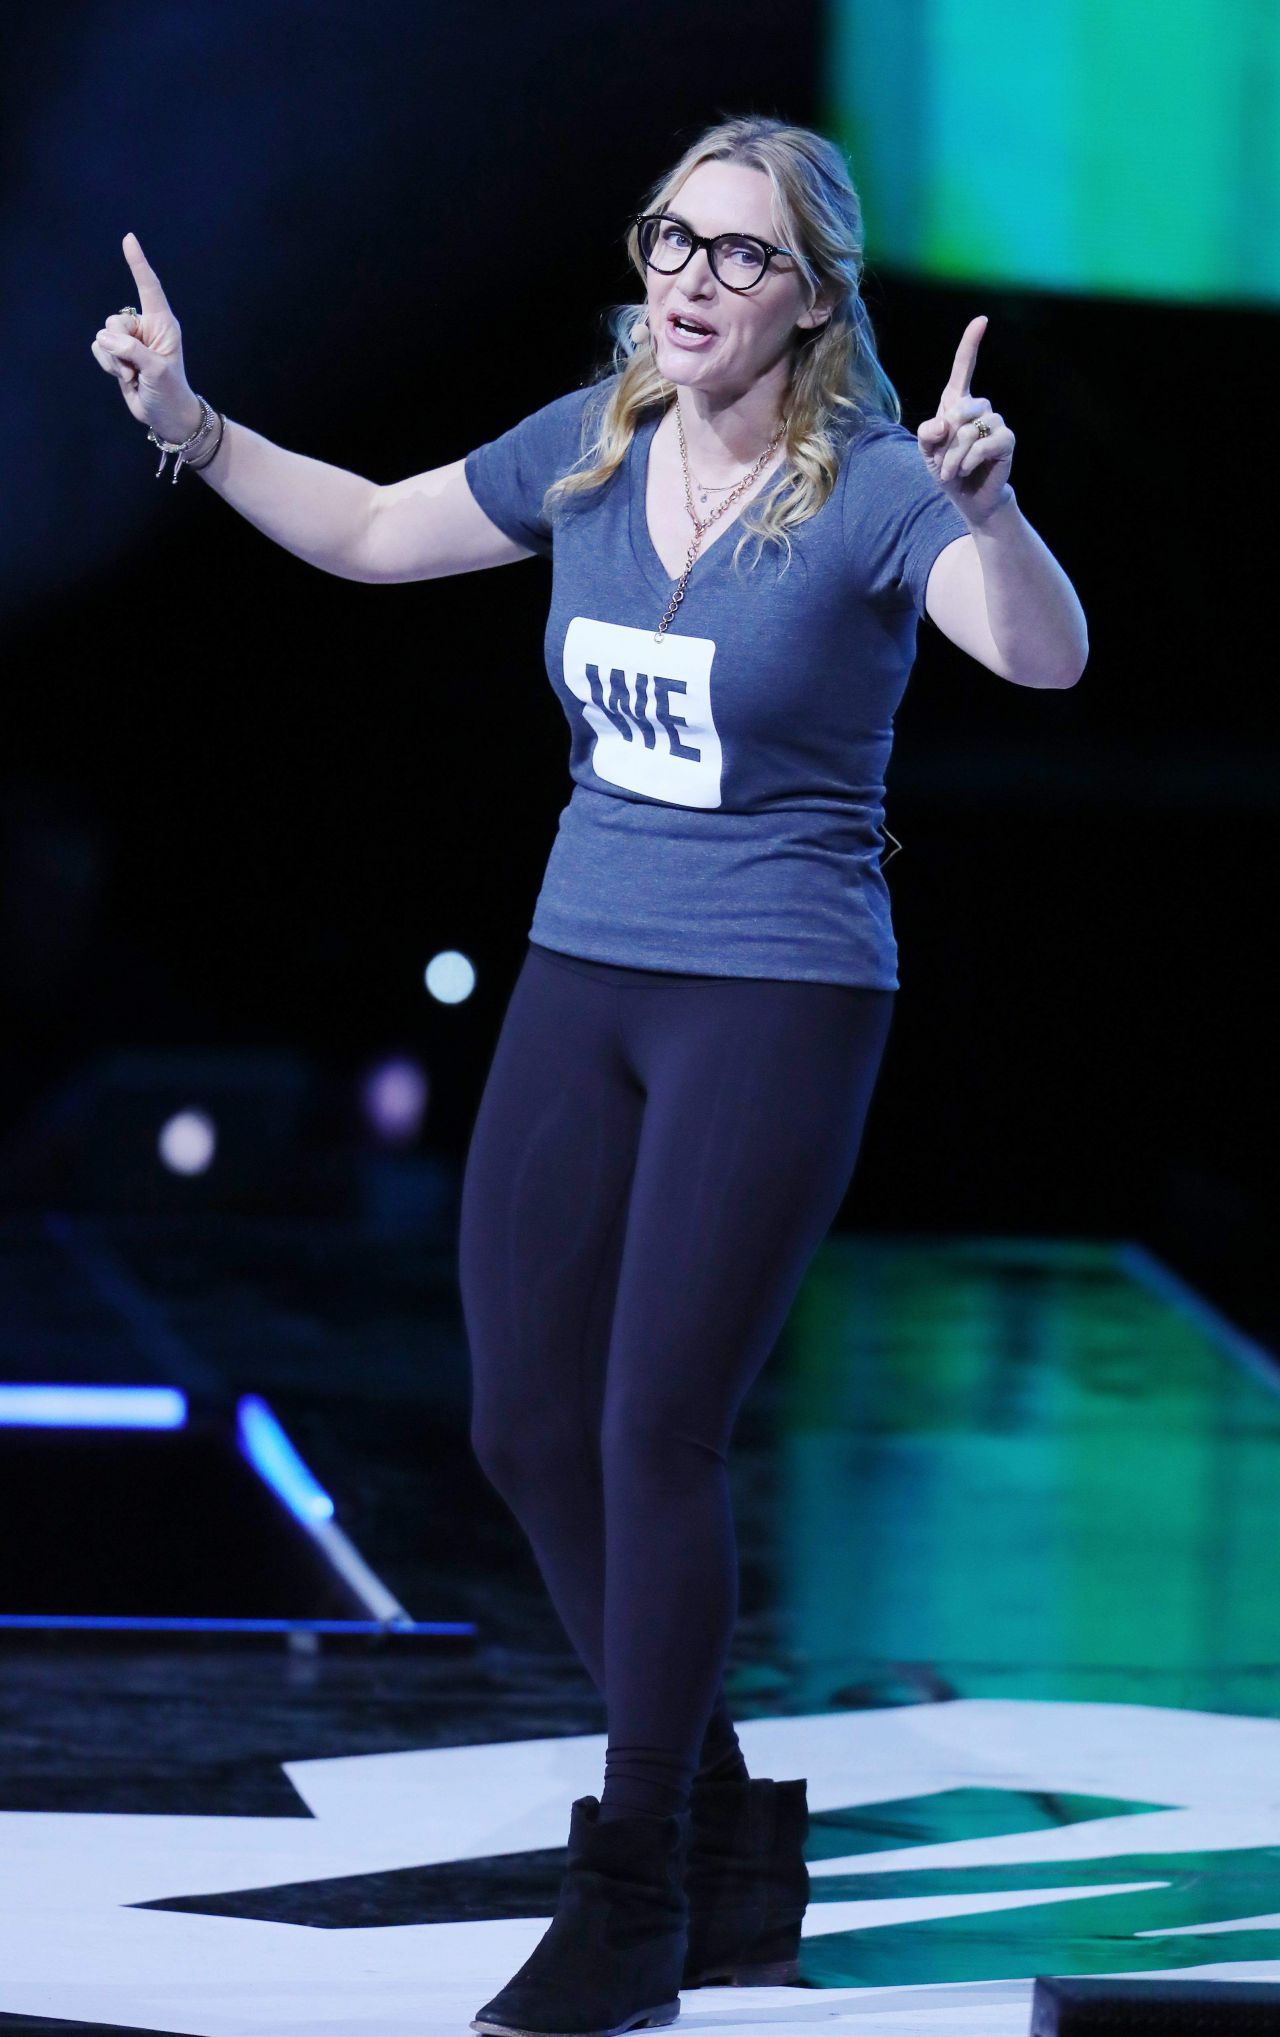 Kate Winslet Performing WE Day Wembley March 322 2017